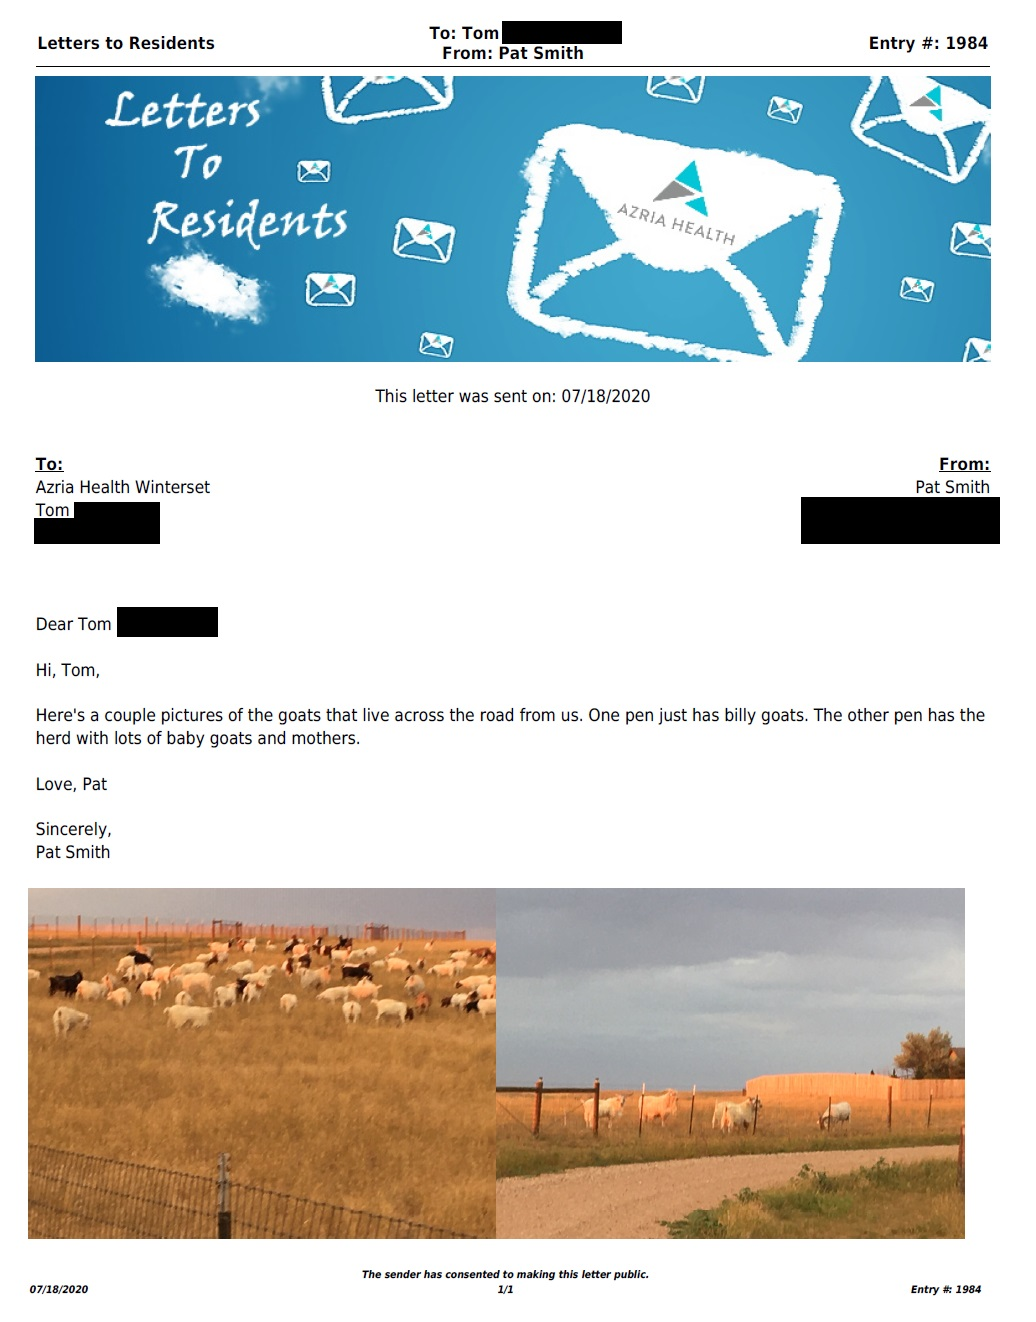 Letter to Winterset (7/18/2020)